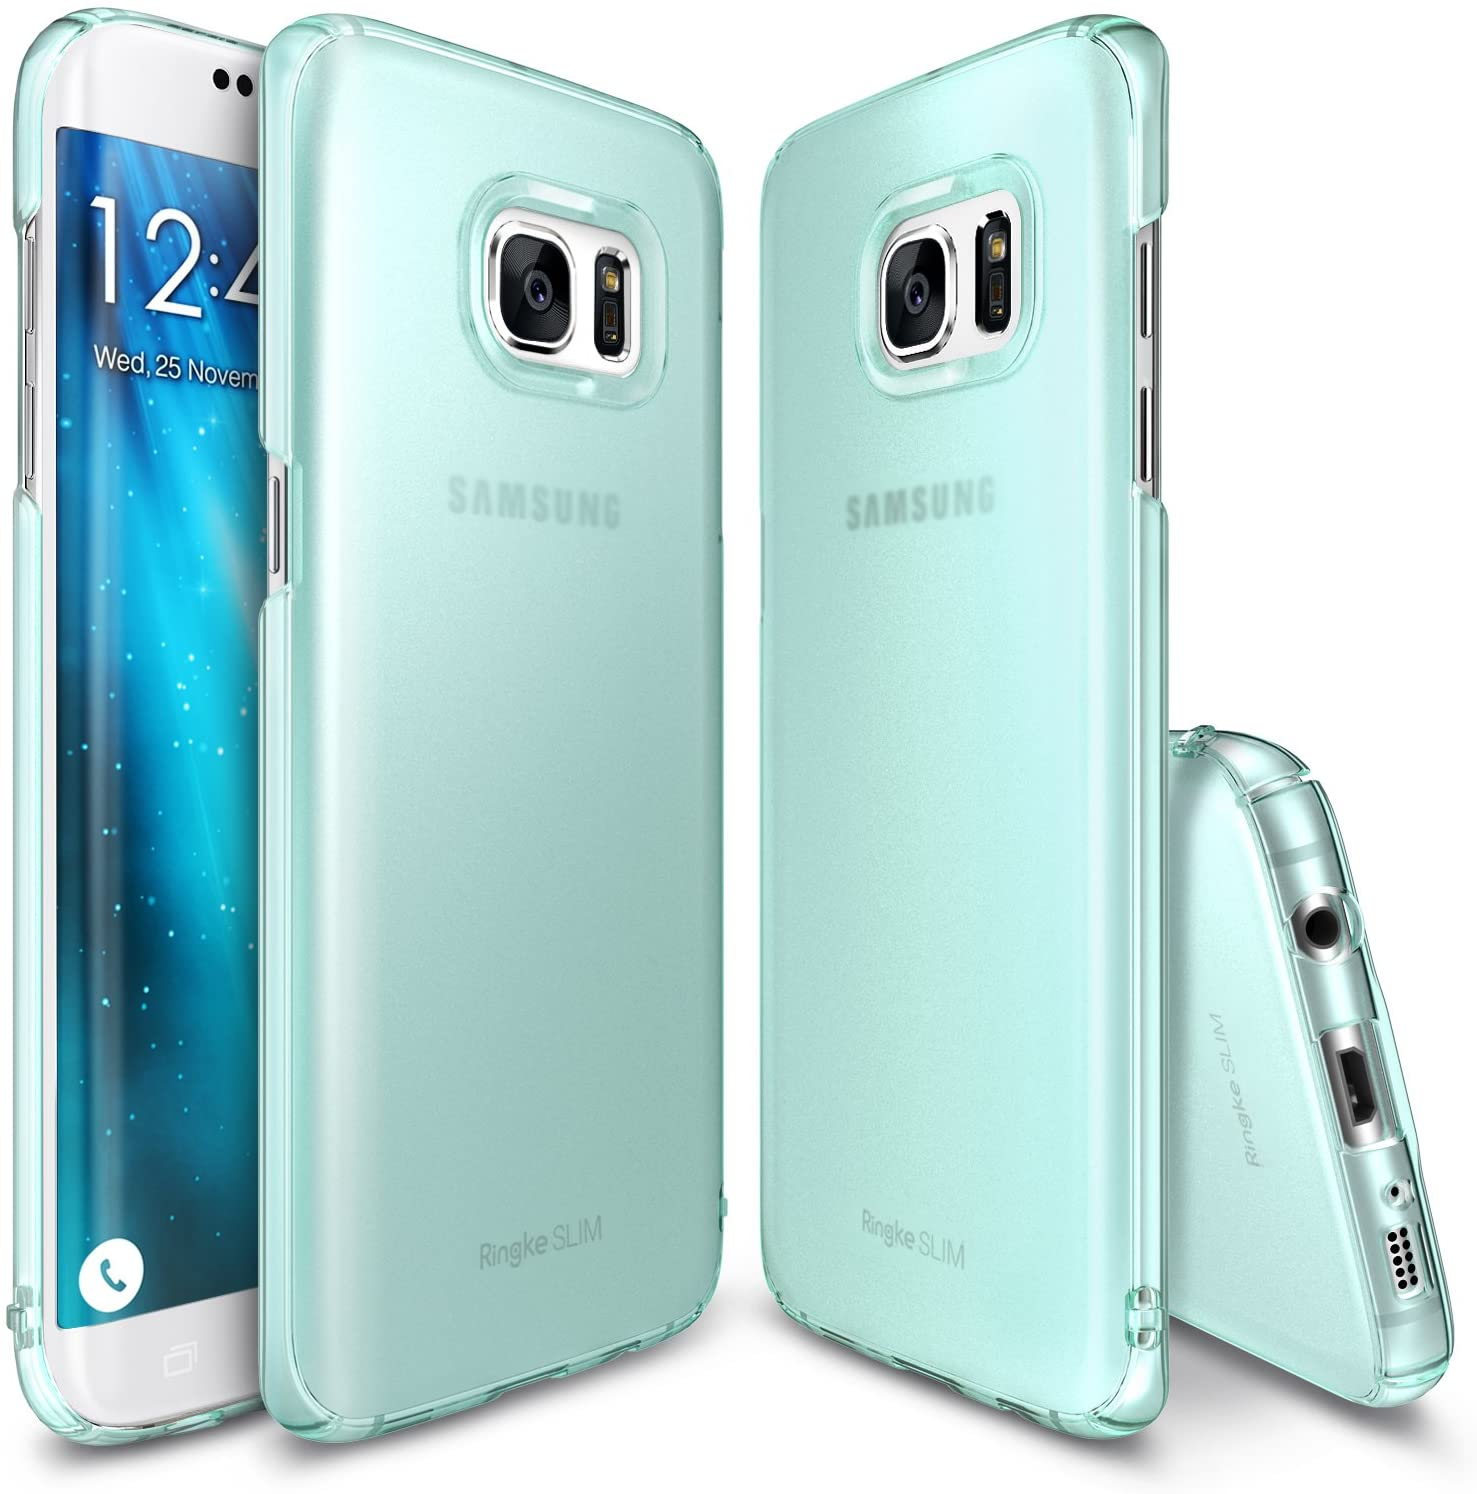 ringke slim premium pc hard cover case for galaxy s7 edge frost mint